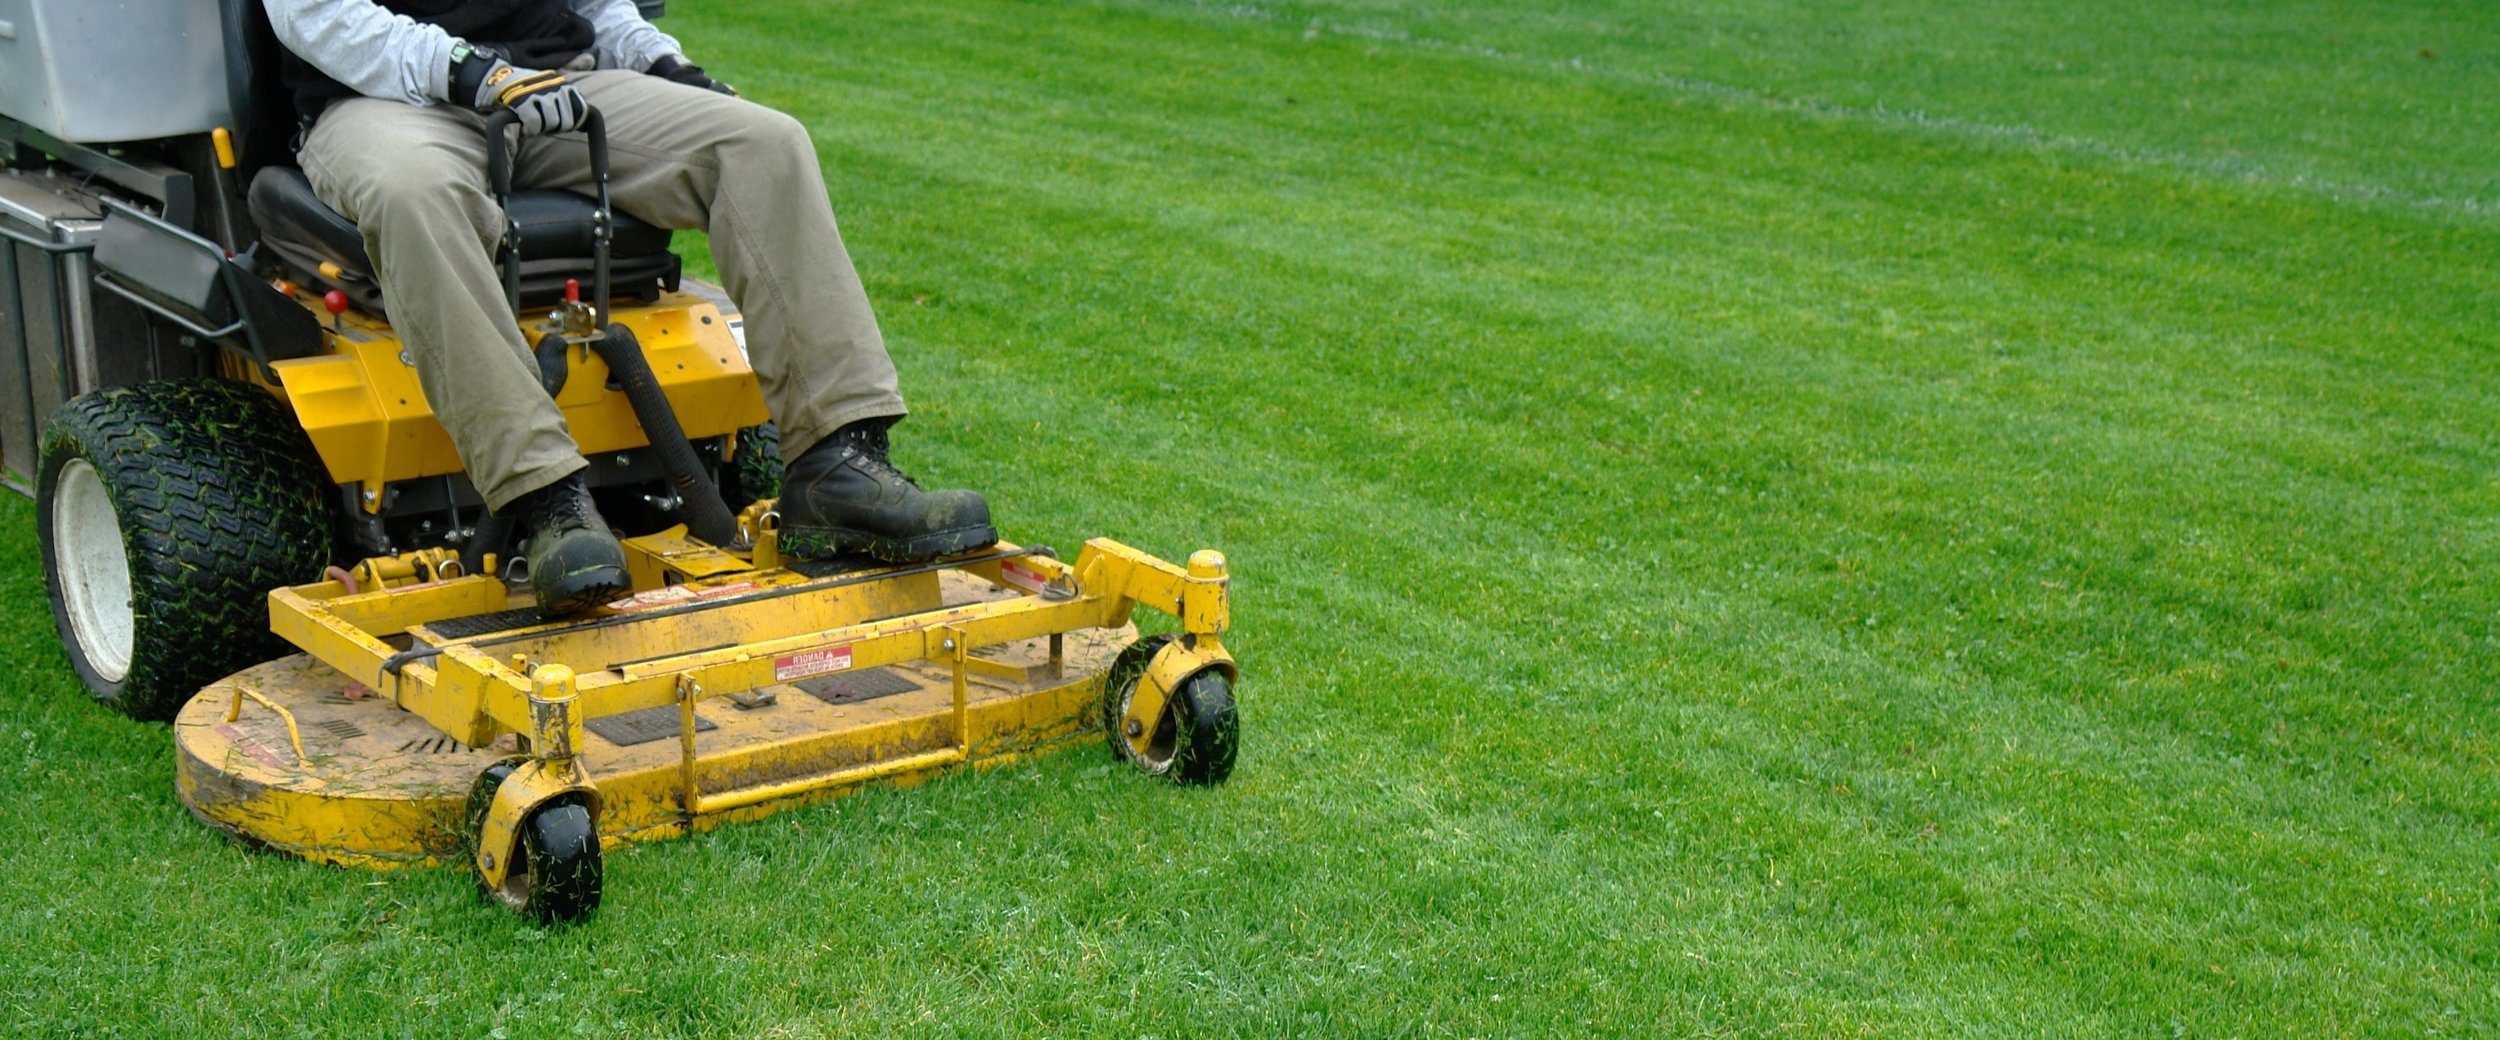 Monthly Lawn Services